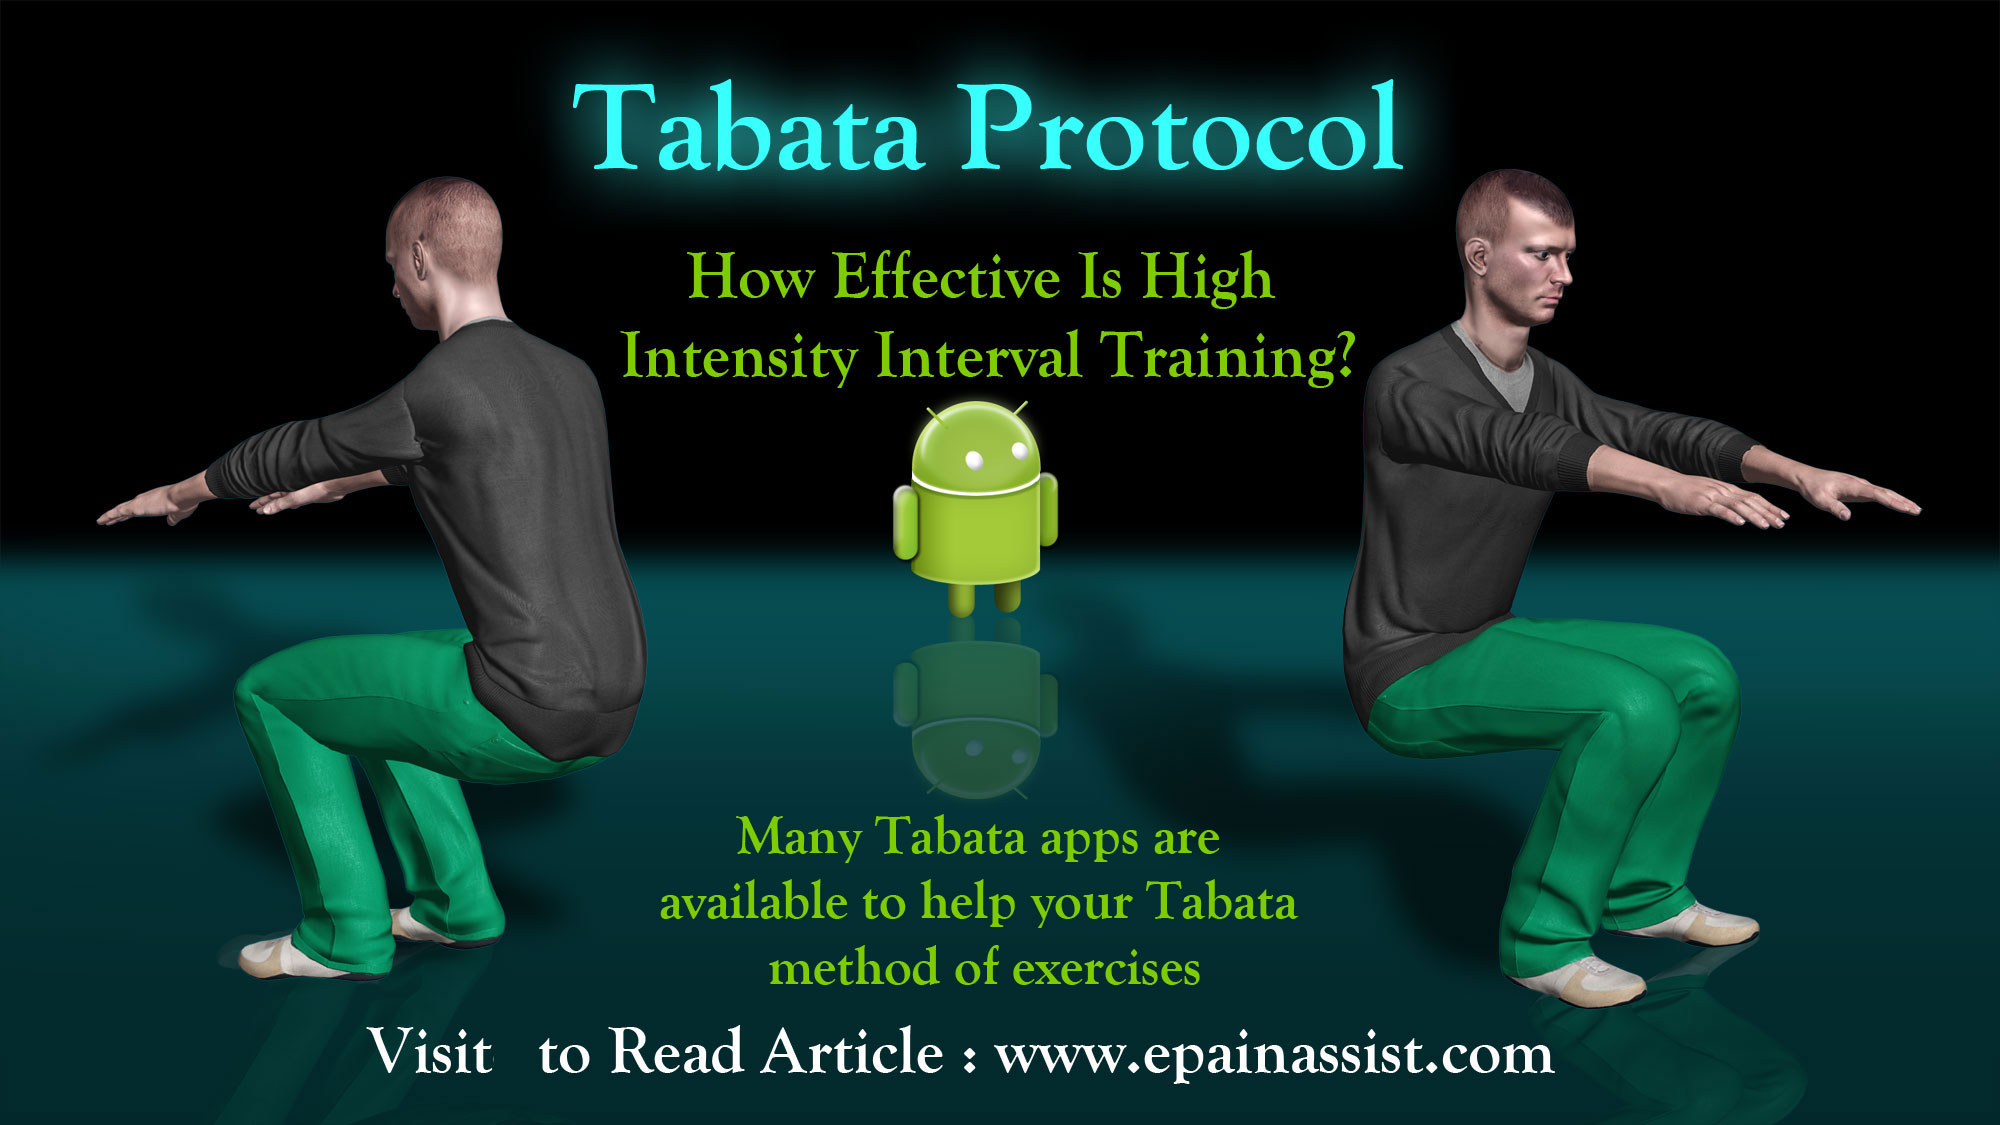 Tabata Protocol: How Effective Is High Intensity Interval Training?